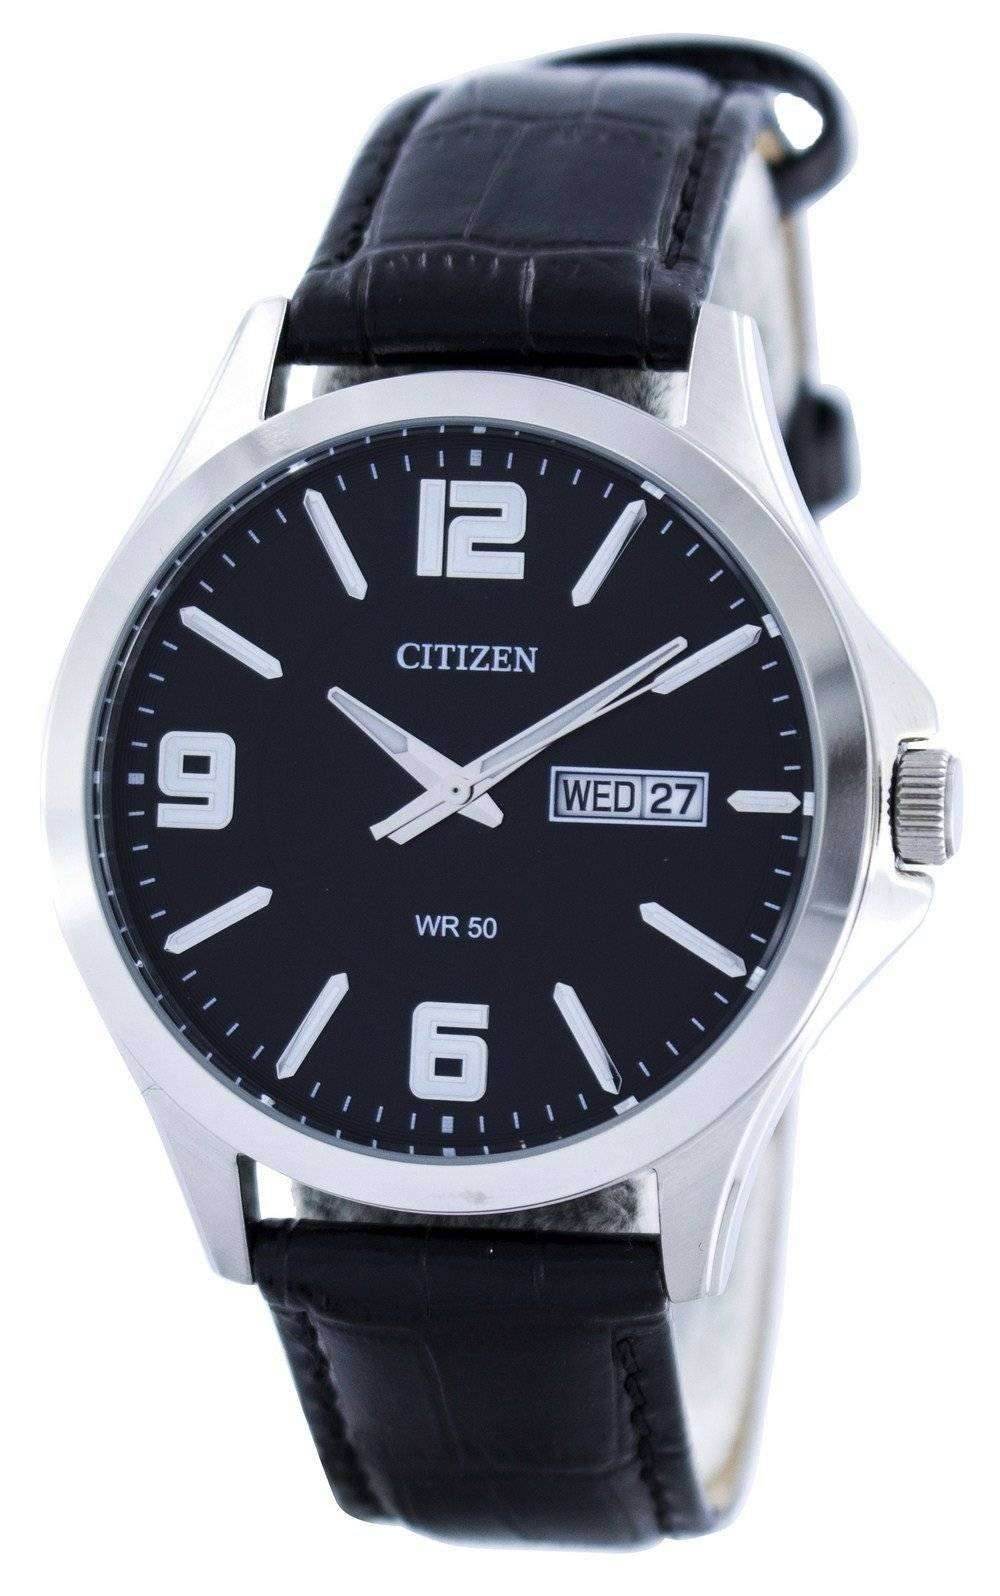 Citizen Quartz Black Dial BF2001-04E Mens Watch - DownUnderWatches